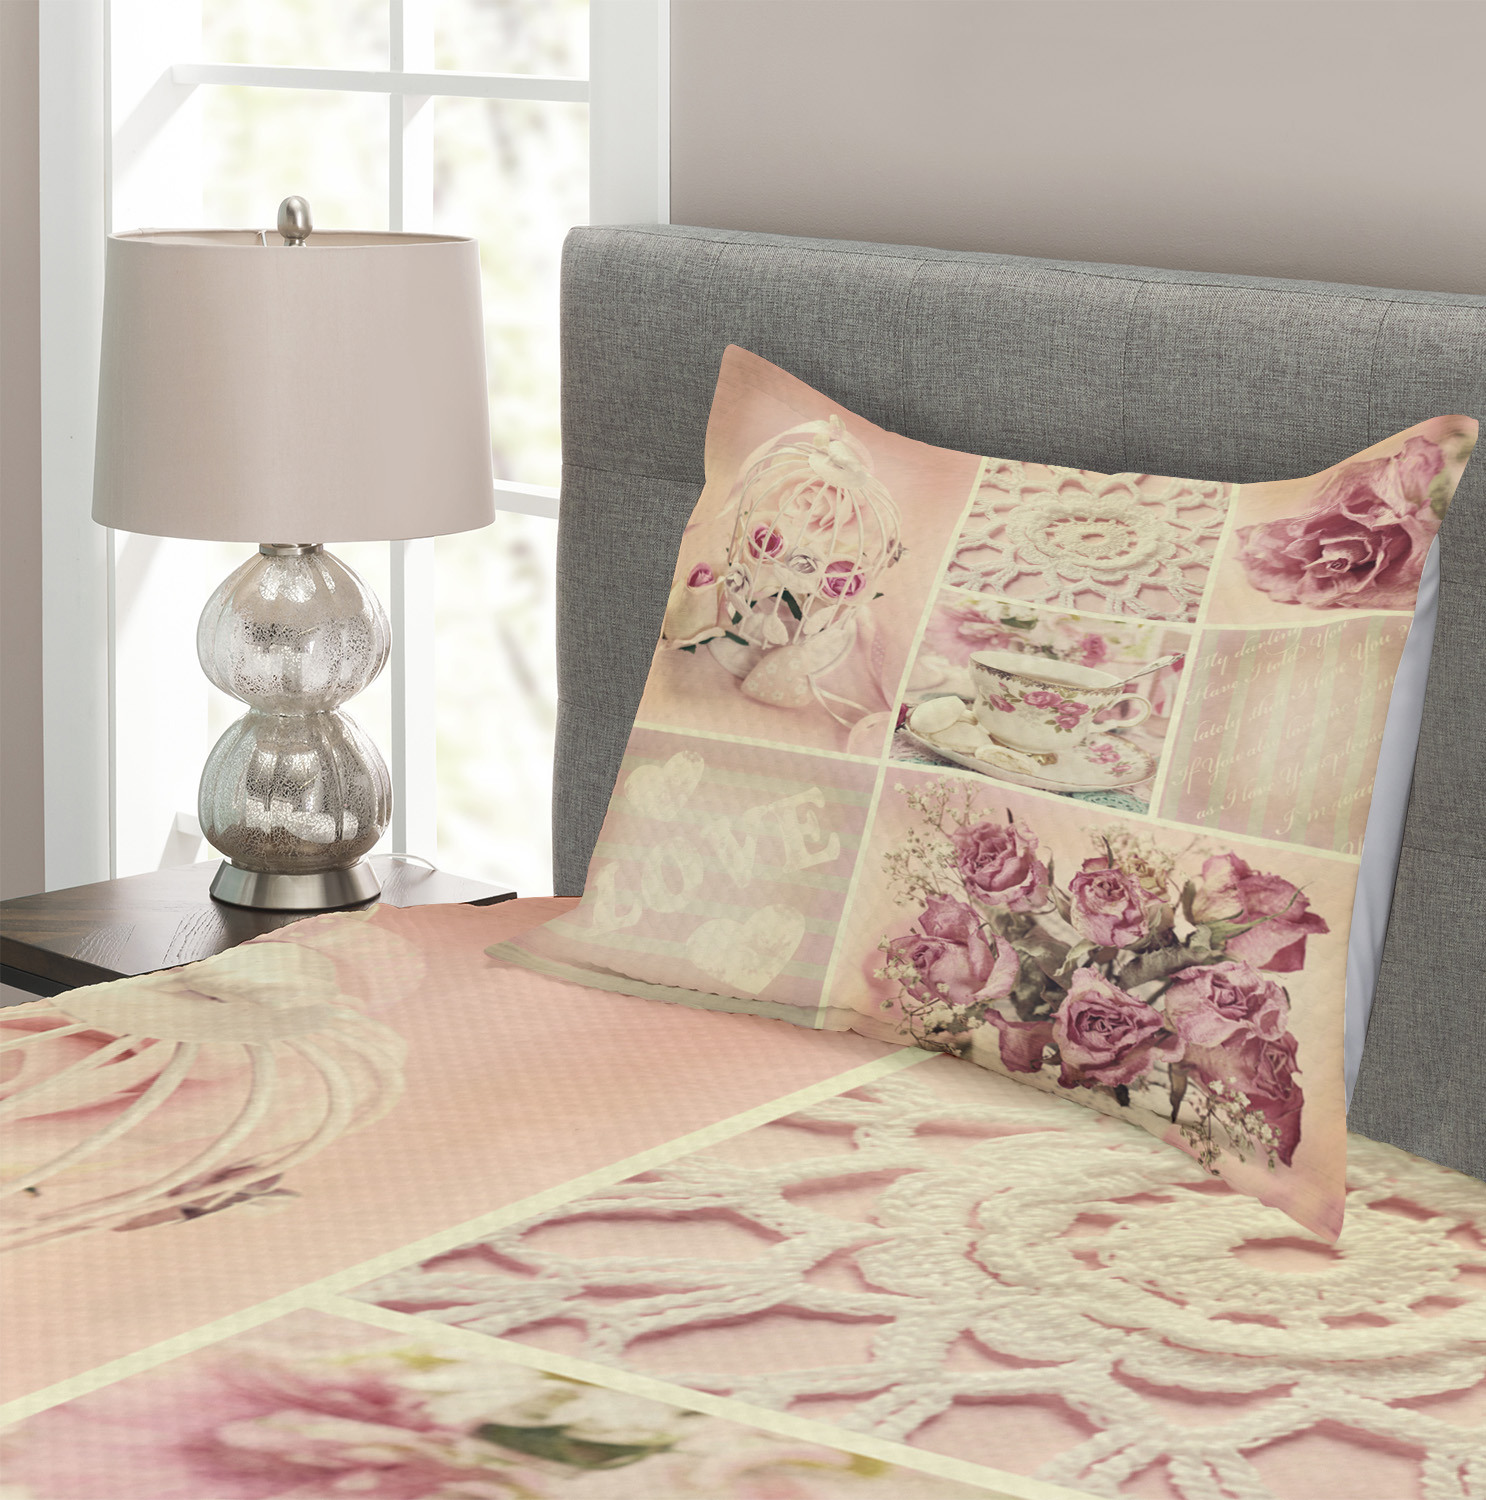 Mothers-Day-Quilted-Bedspread-amp-Pillow-Shams-Set-Vintage-Lace-Cups-Print thumbnail 3